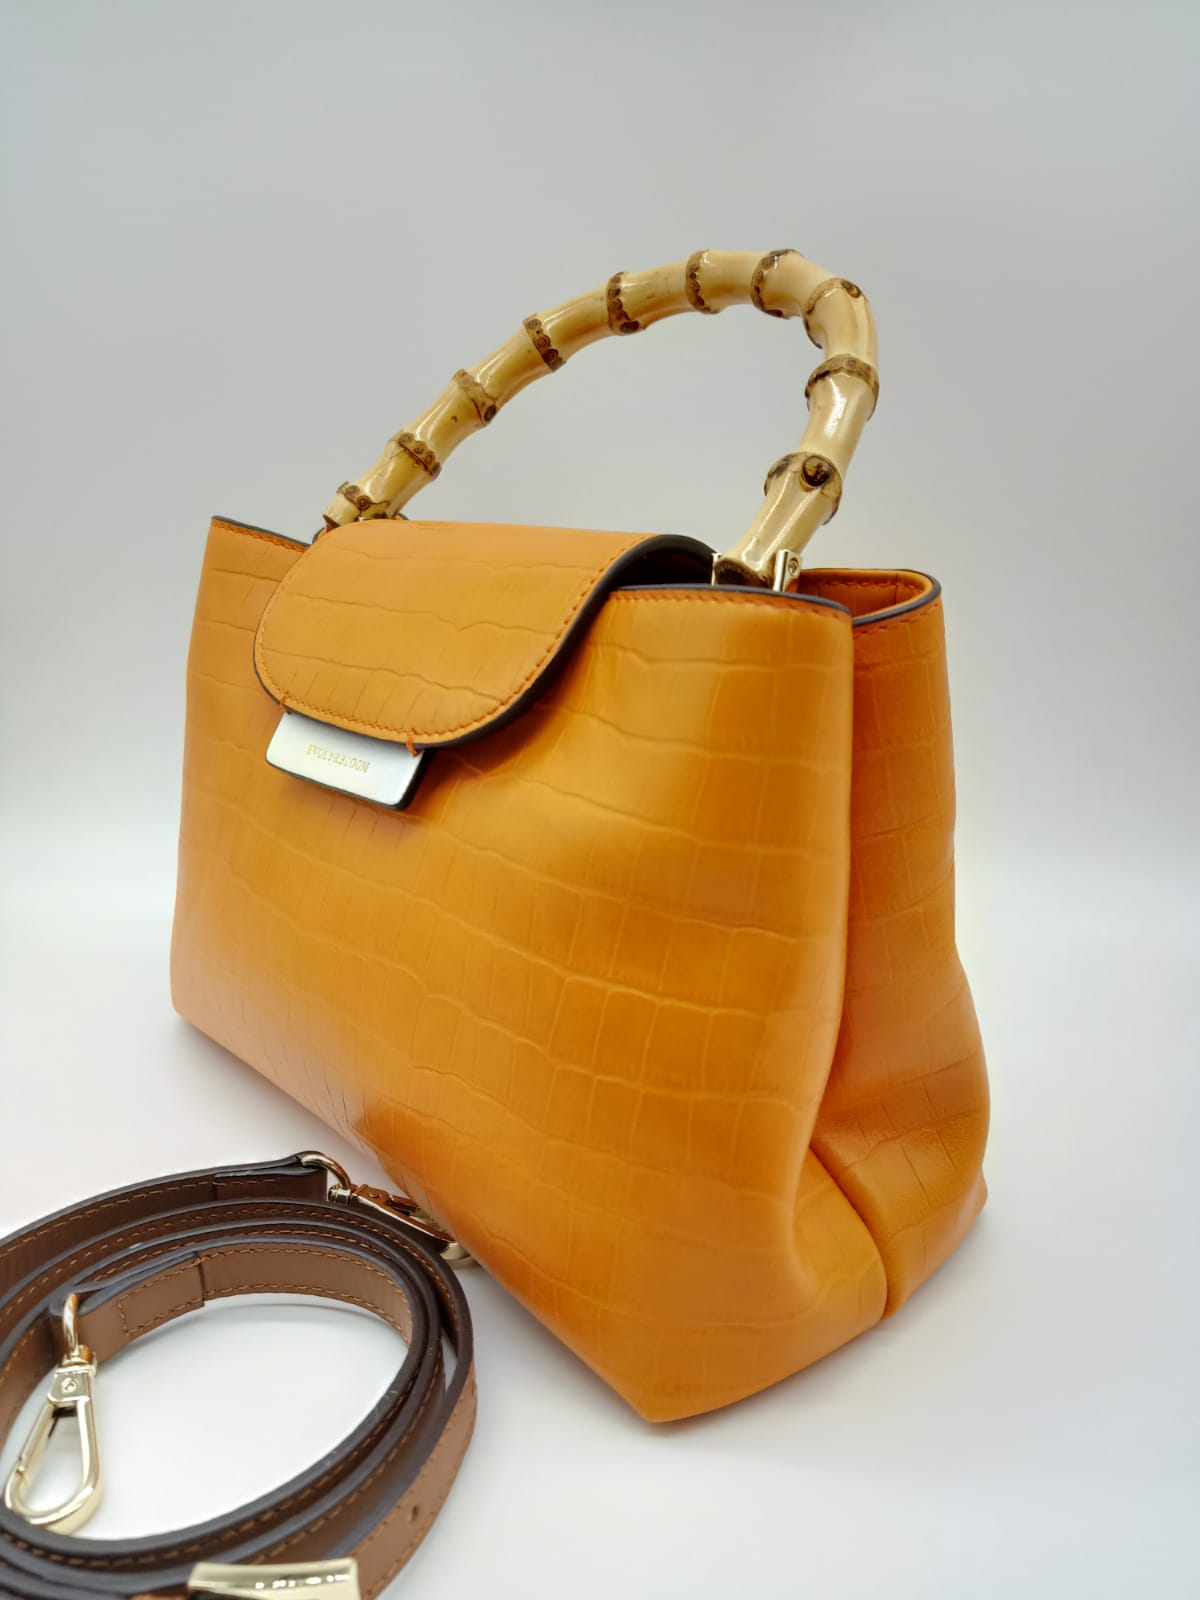 Calf Leather Handbag with Wooden Trim